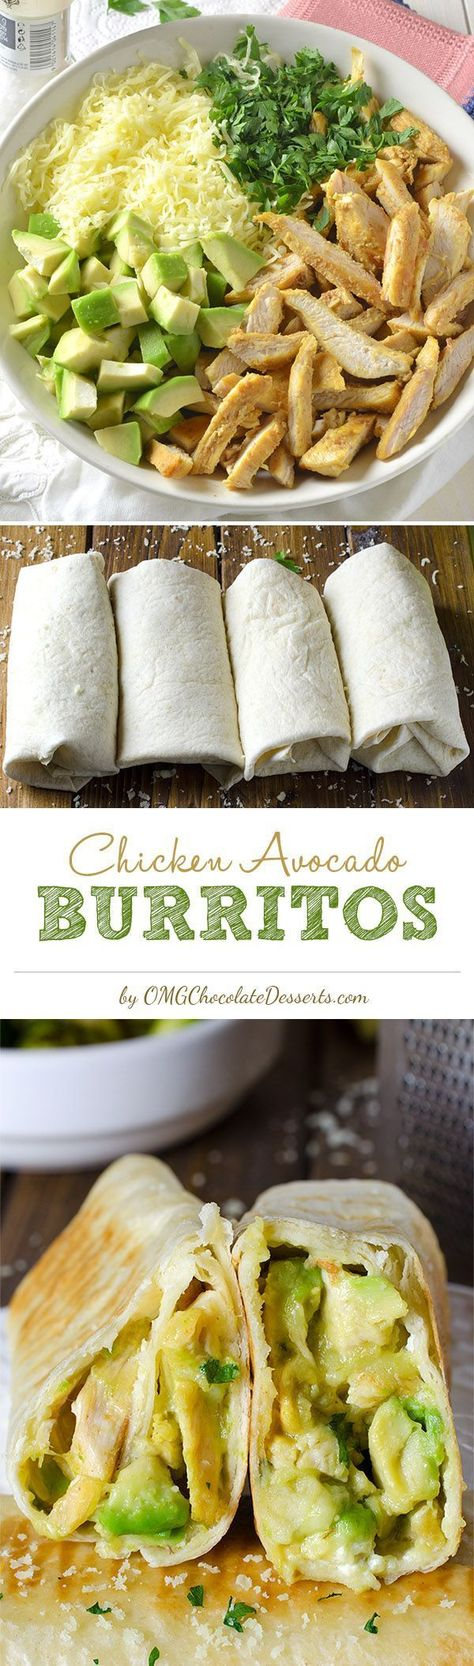 Easy Chicken Avocado Burritos -- You can even make them in advance!